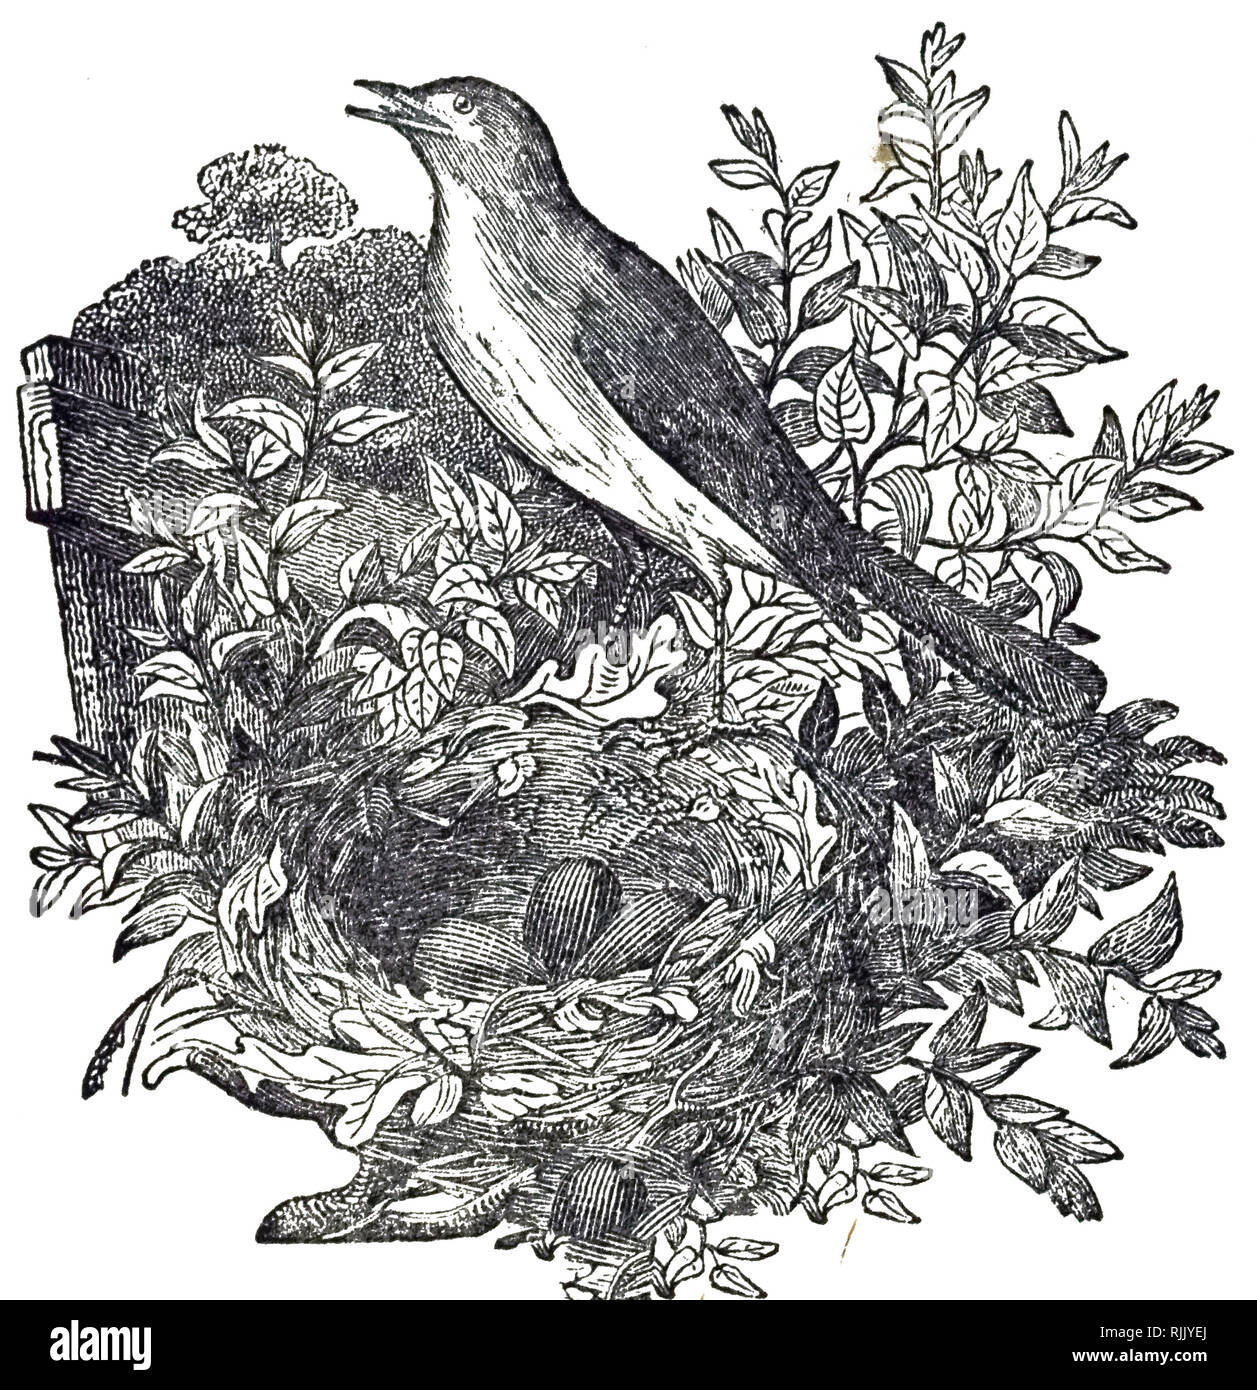 An engraving depicting a Common nightingale, a small passerine bird best known for its robust and beautiful song. Dated 19th century - Stock Image